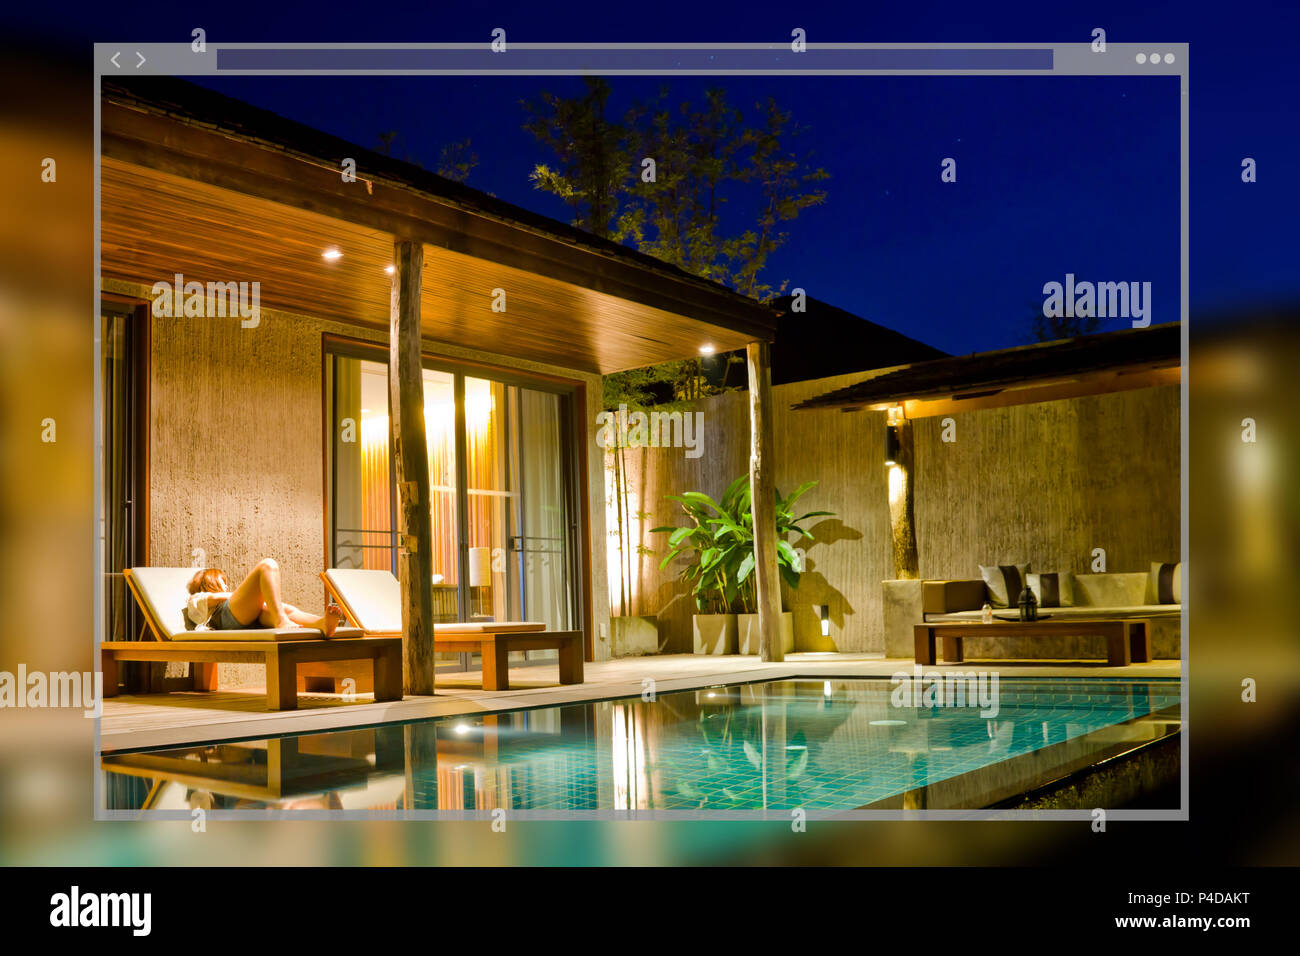 Web site page design concept modern house with swimming pool background